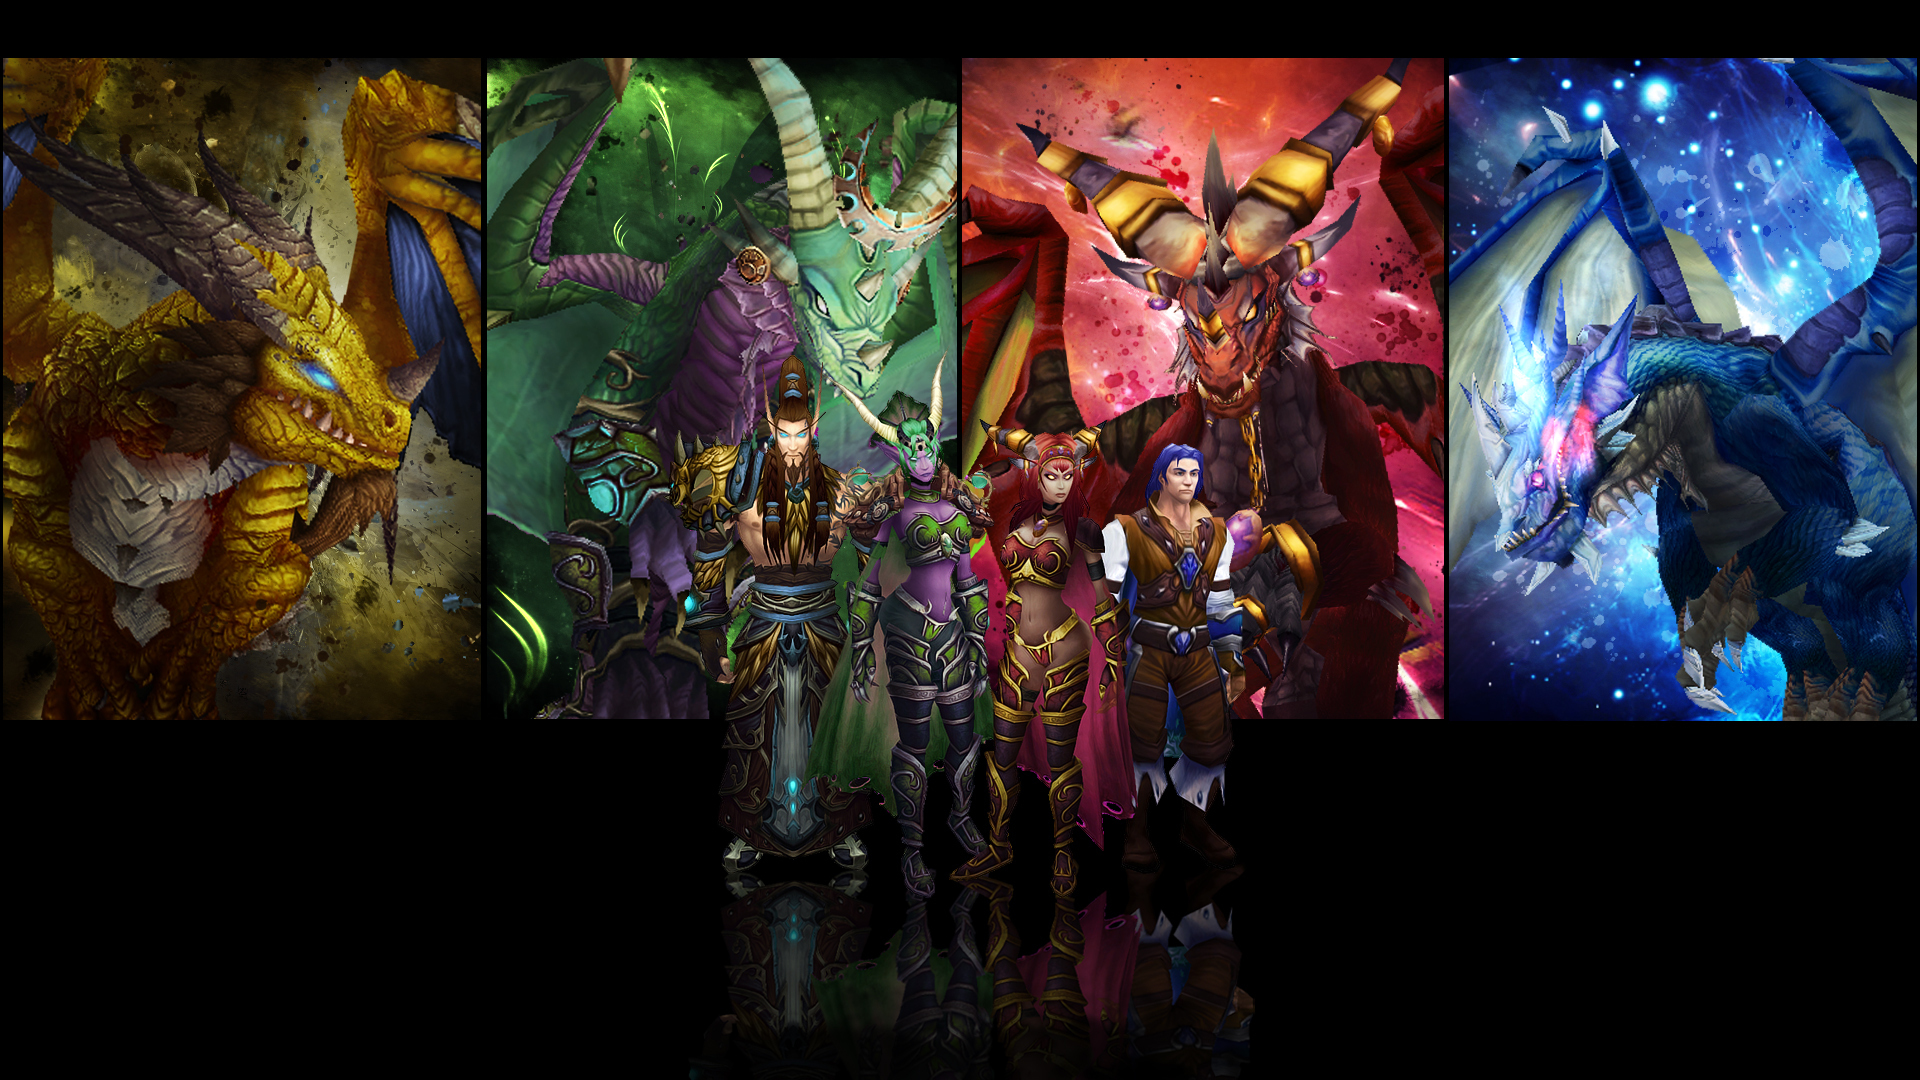 Aspects Of Art : World of warcraft wow dragon horns games fantasy